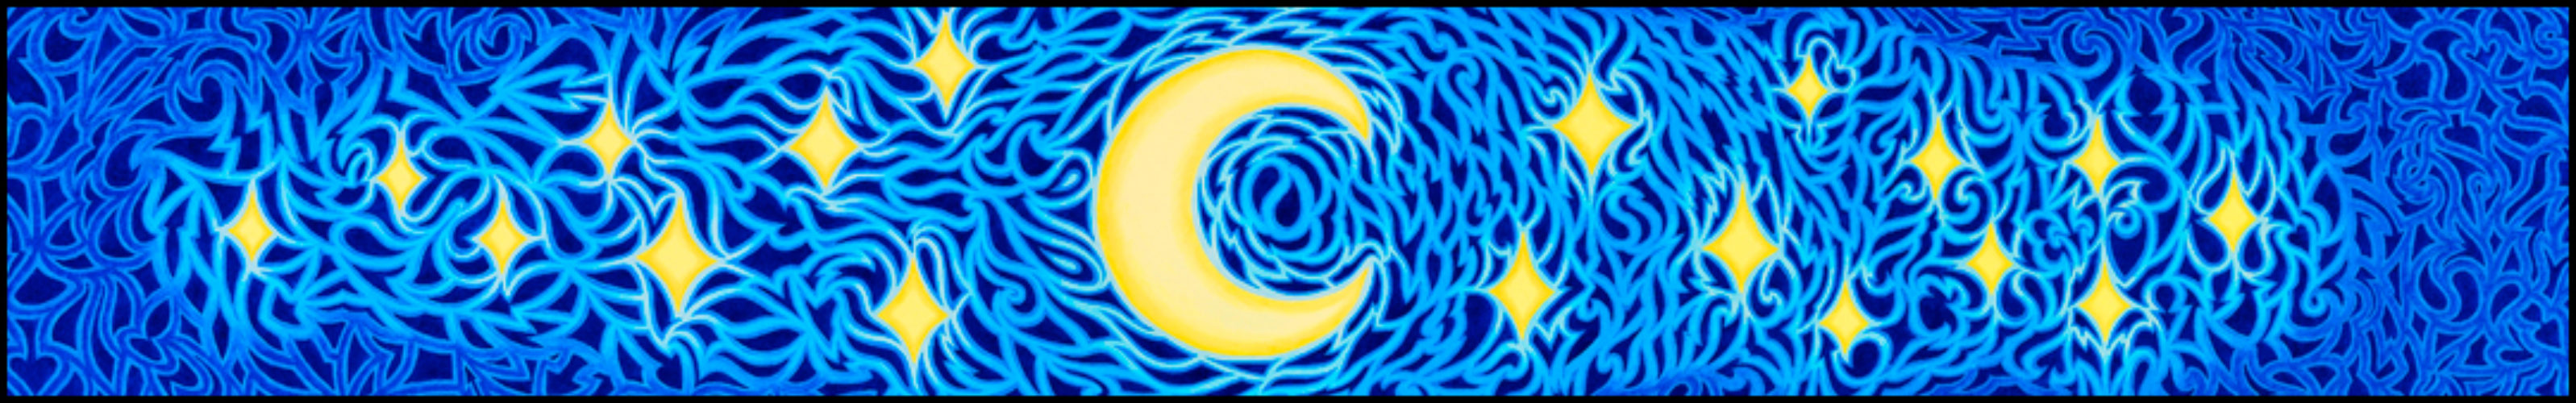 """Energy of The Night - Oil on canvas, 8"""" x 48"""", 2006-2007"""